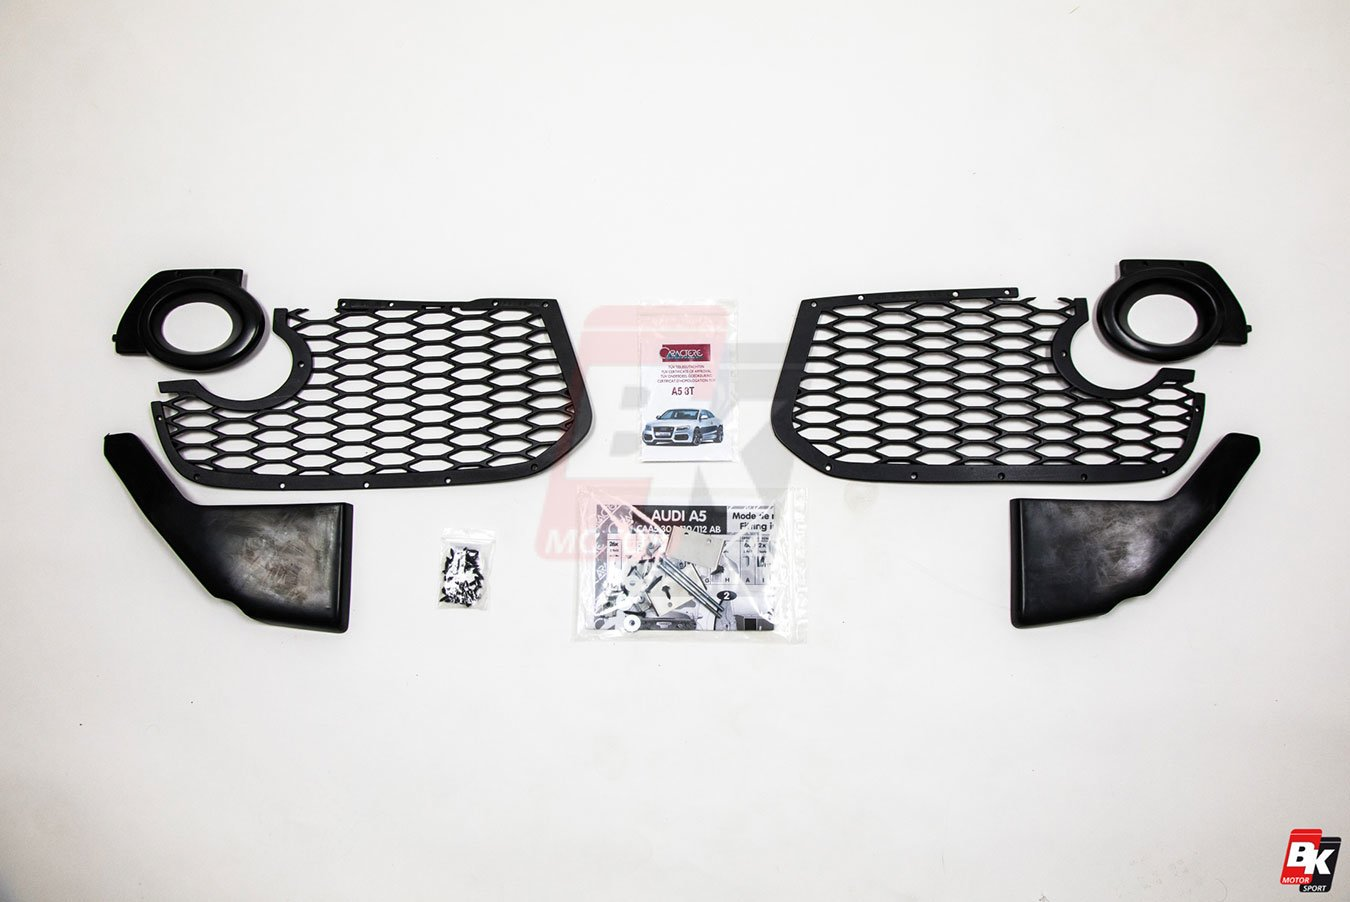 Caractere Front Bumper for Cars with Original Foglights and Parking Sensors, fits Audi A5 B8.0